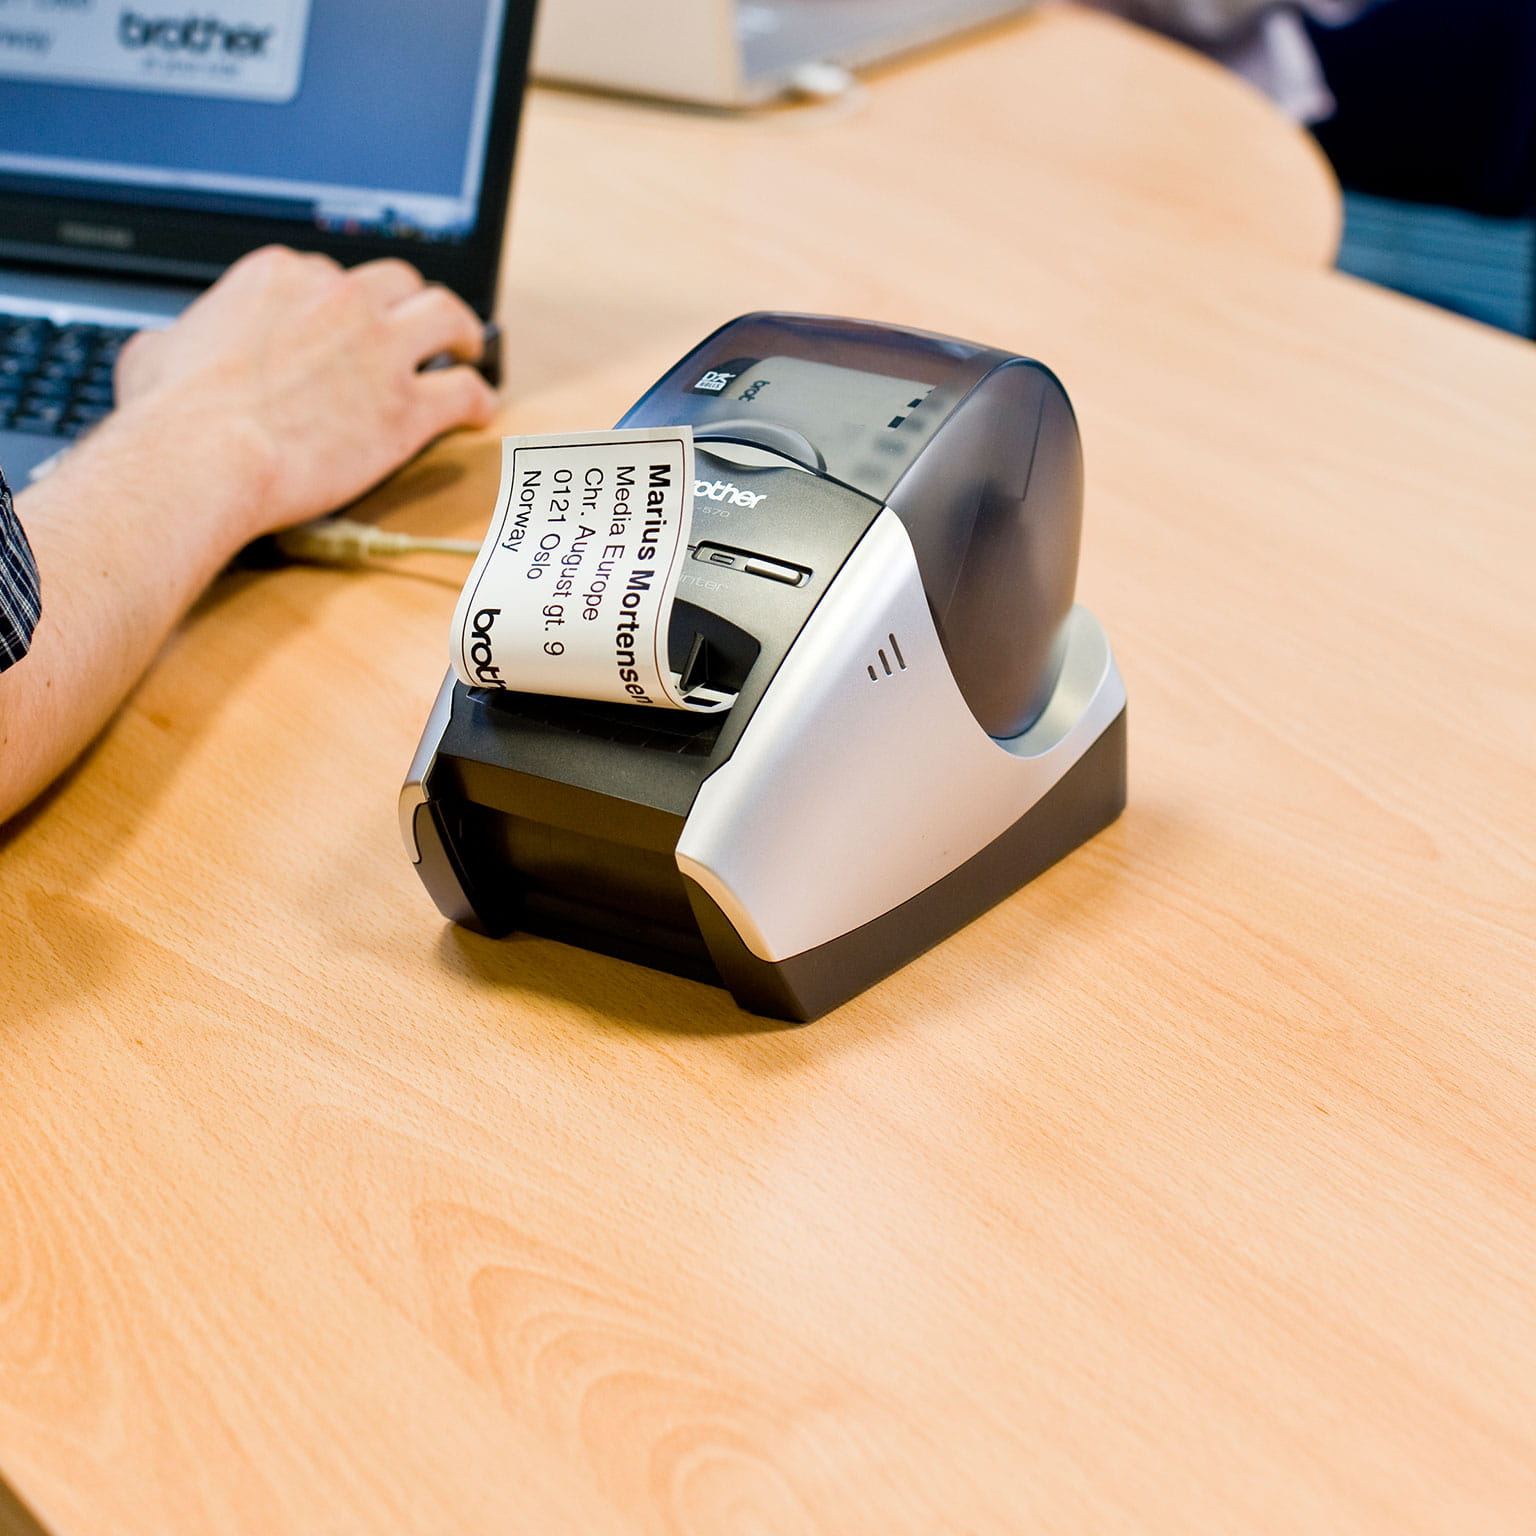 A Brother desktop label printer being used in a small office